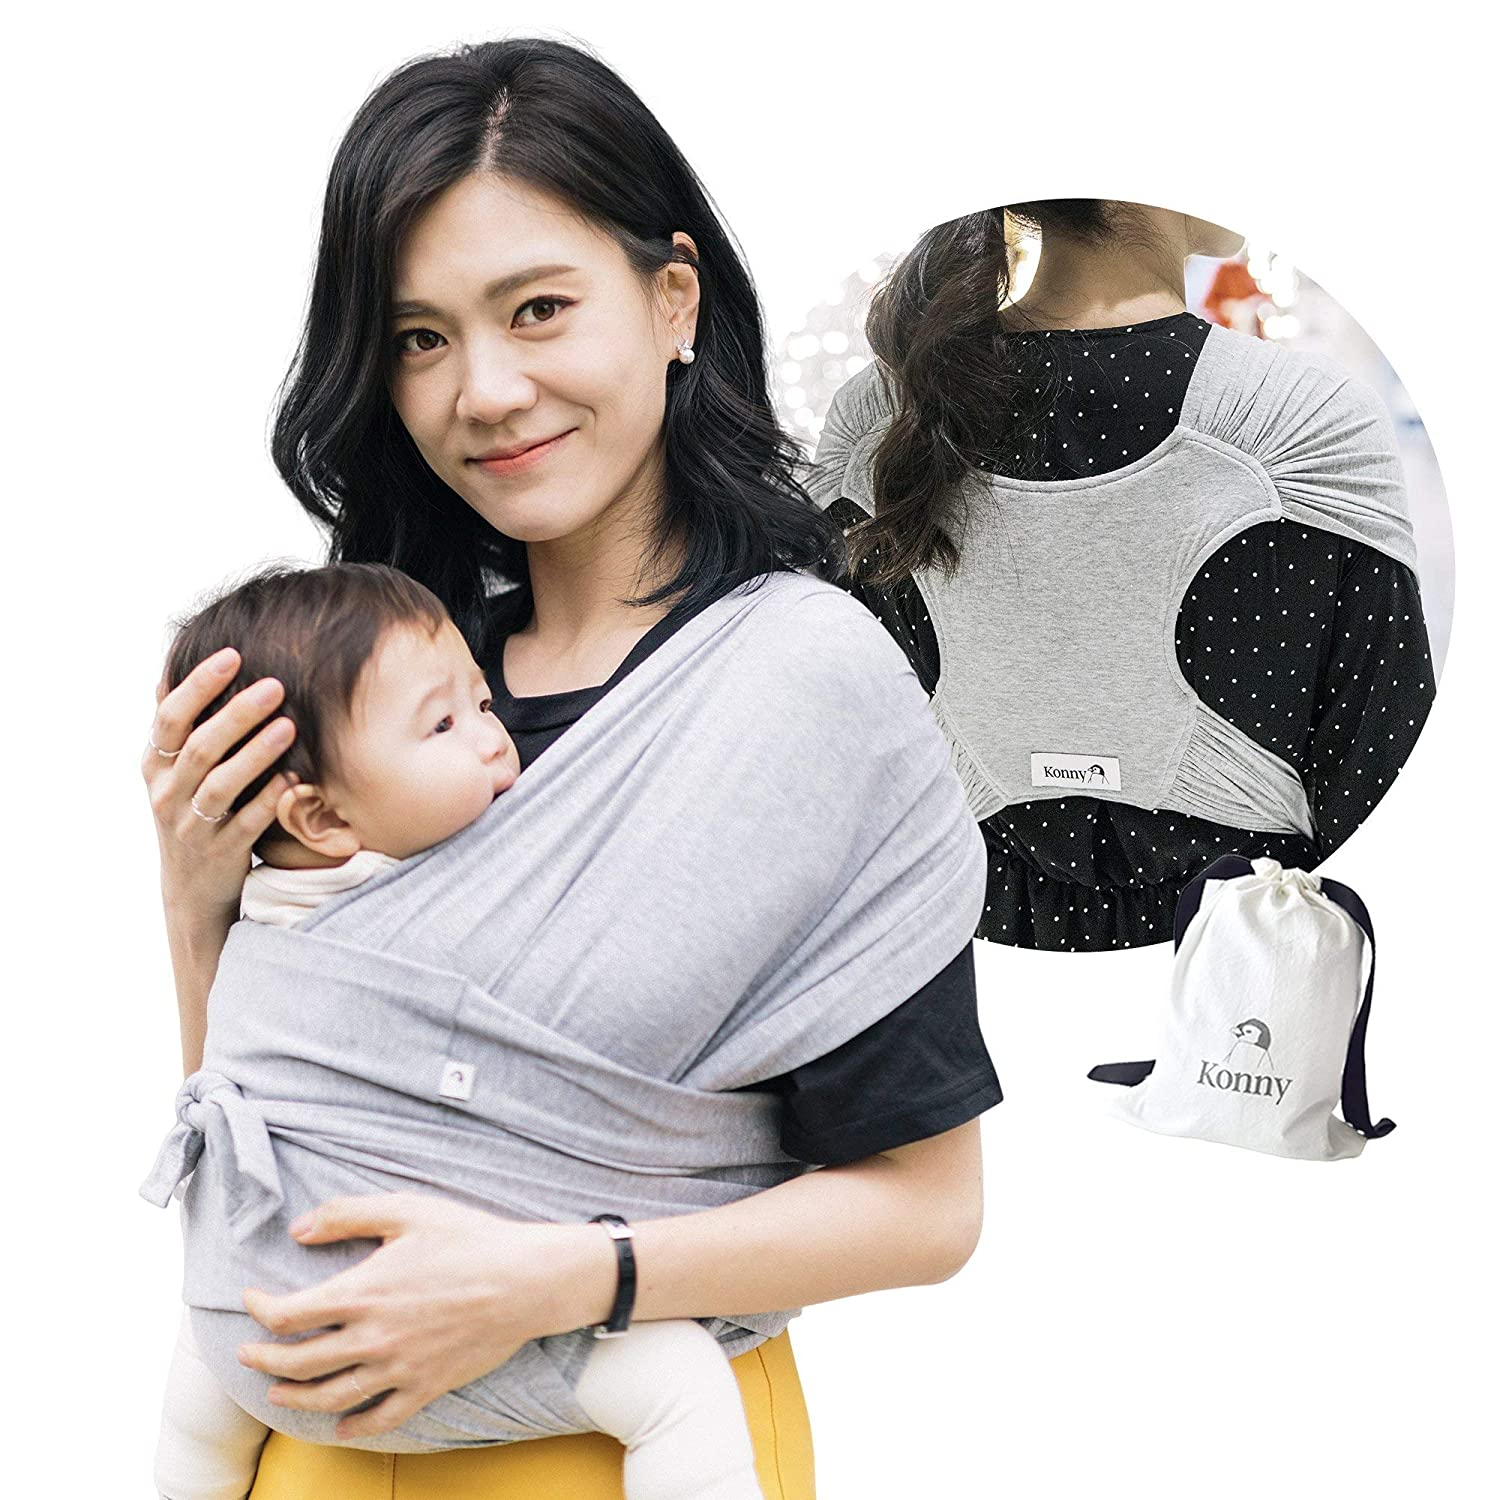 Konny Baby Carrier | Ultra-Lightweight, Hassle-Free Baby Wrap Sling | Newborns, Infants to 44 lbs Toddlers | Soft and Breathable Fabric | Sensible Sleep Solution (Grey, M)